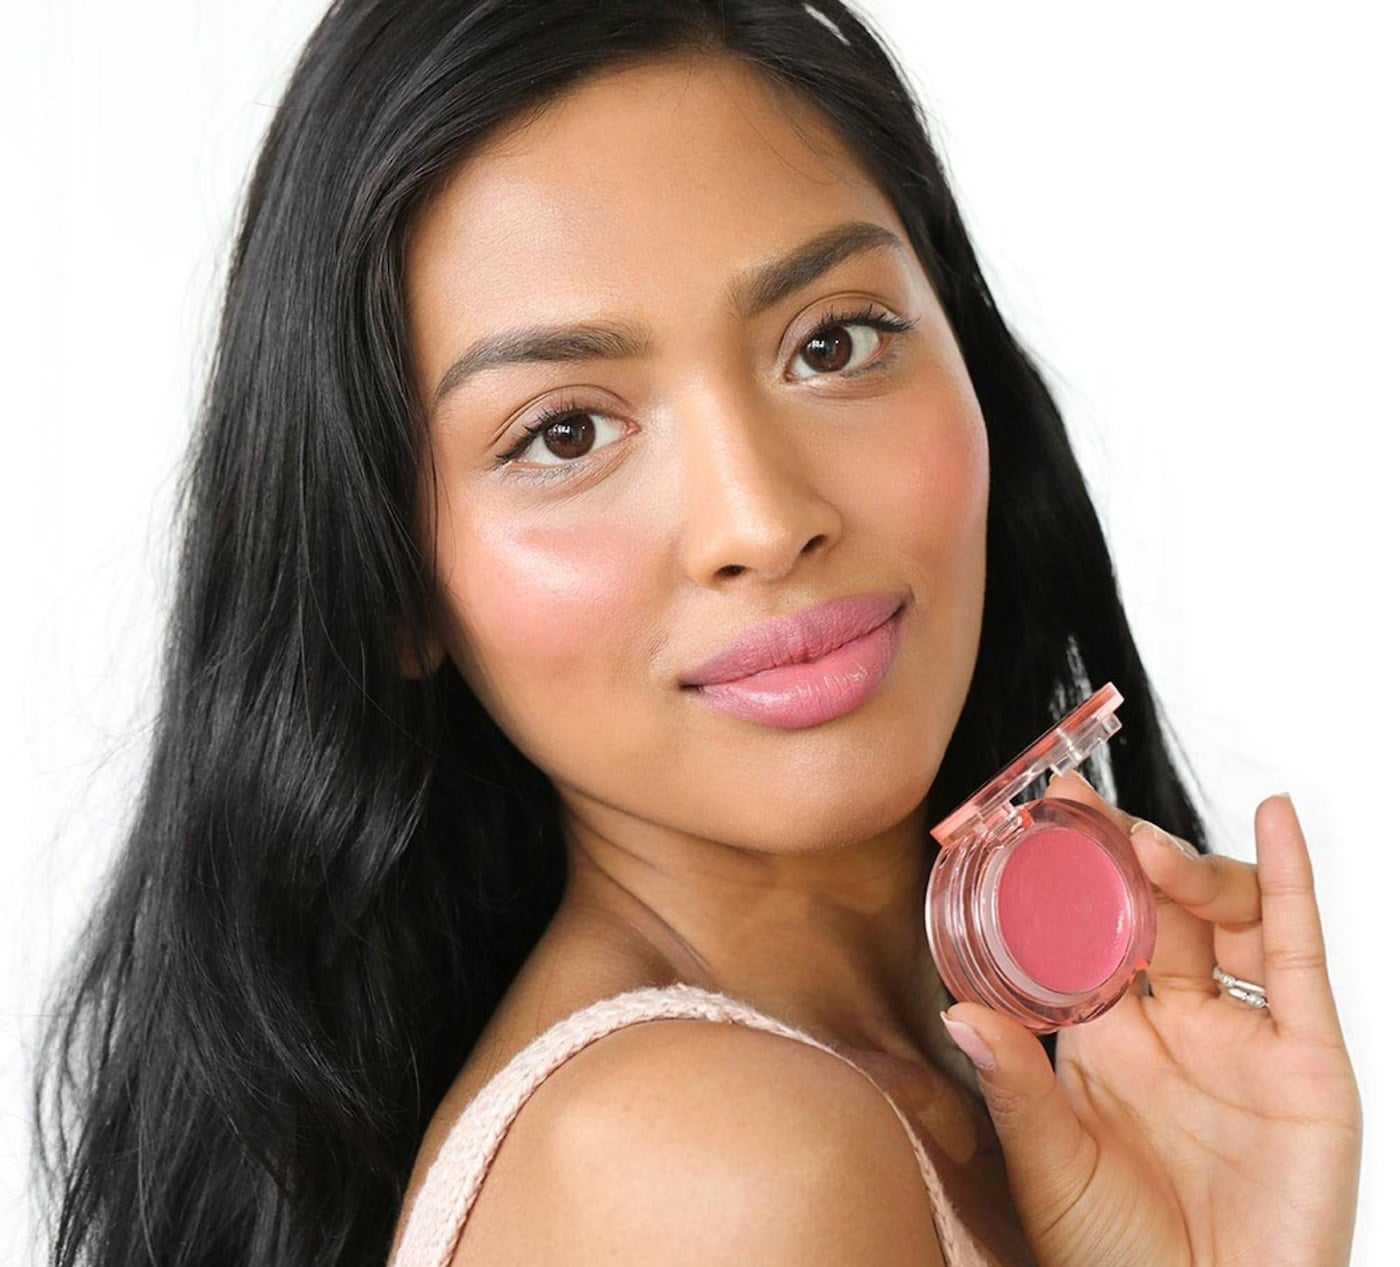 person holding the product with it on her cheeks and lips too